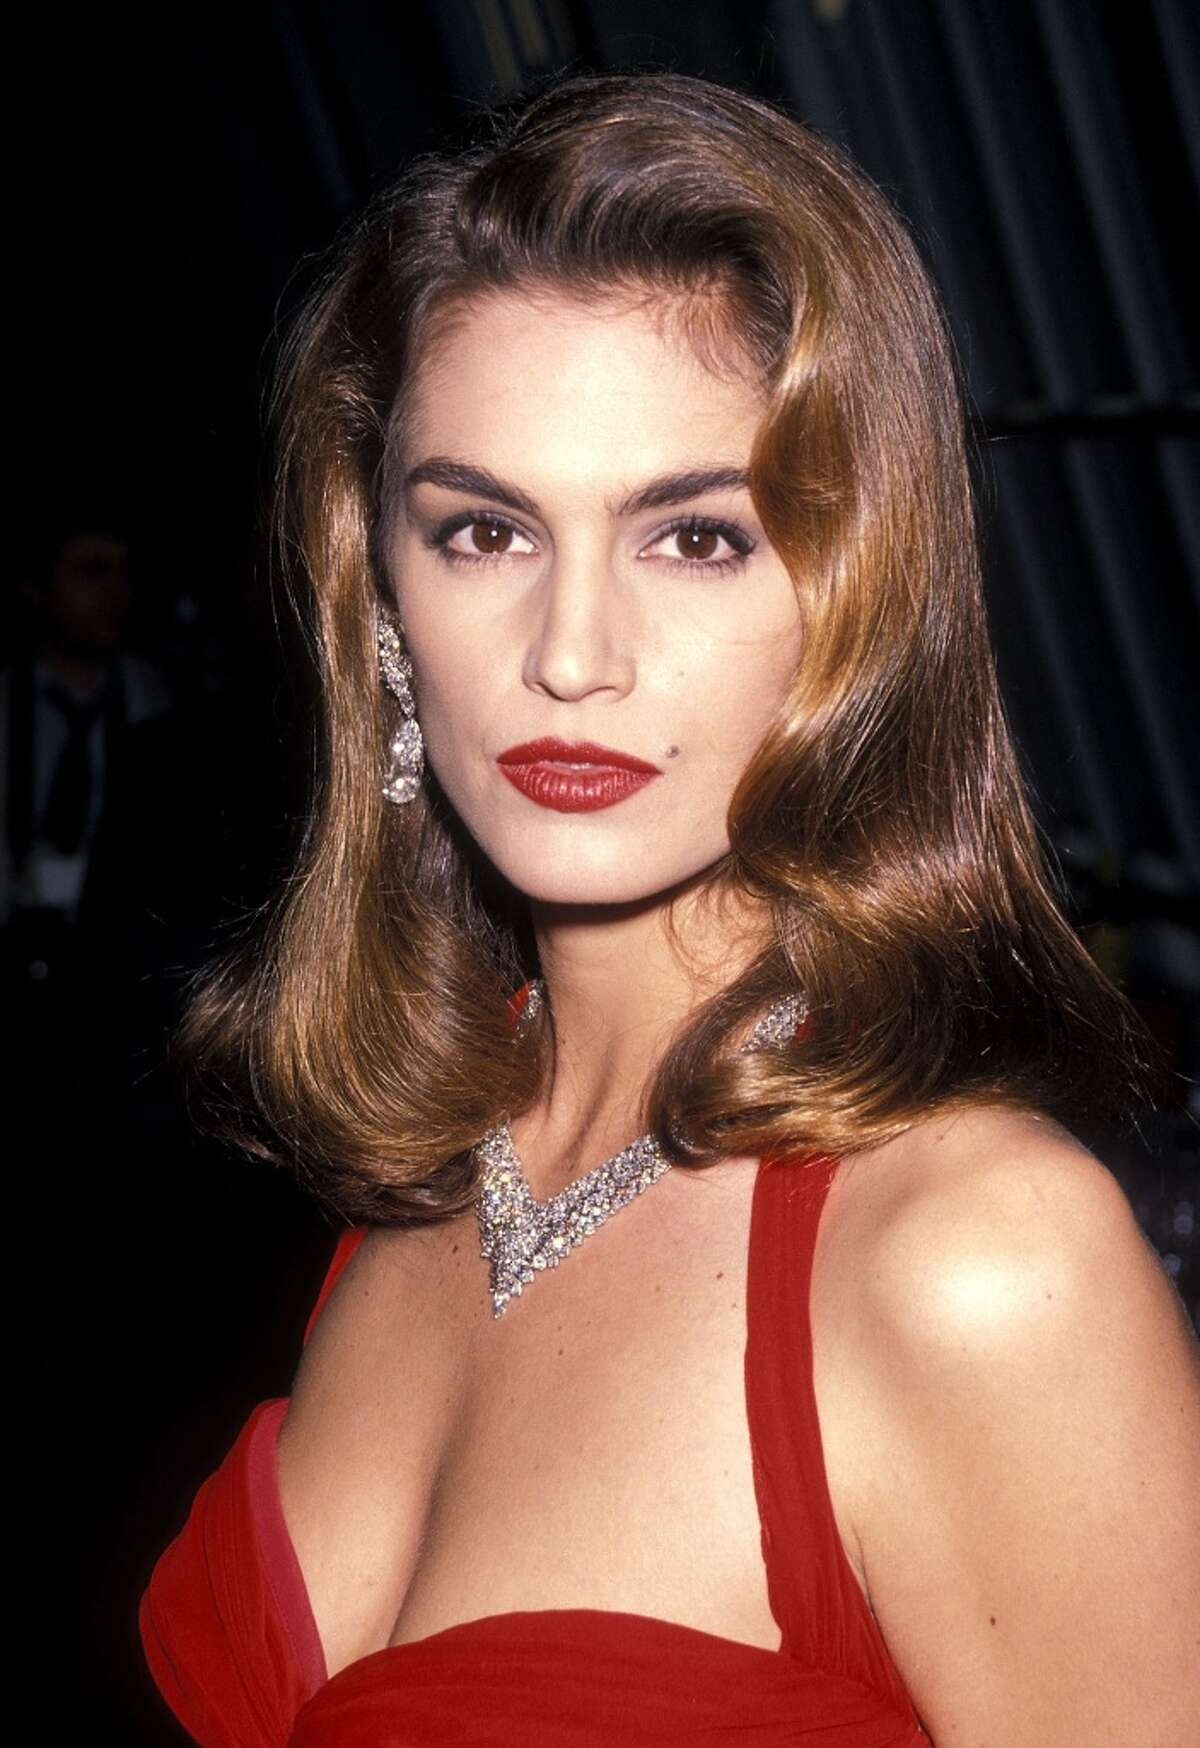 Cindy Crawford in 1990 at 24. Crawford, known for her trademark mole, was one of the biggest supermodels in the late '80s and early '90s.